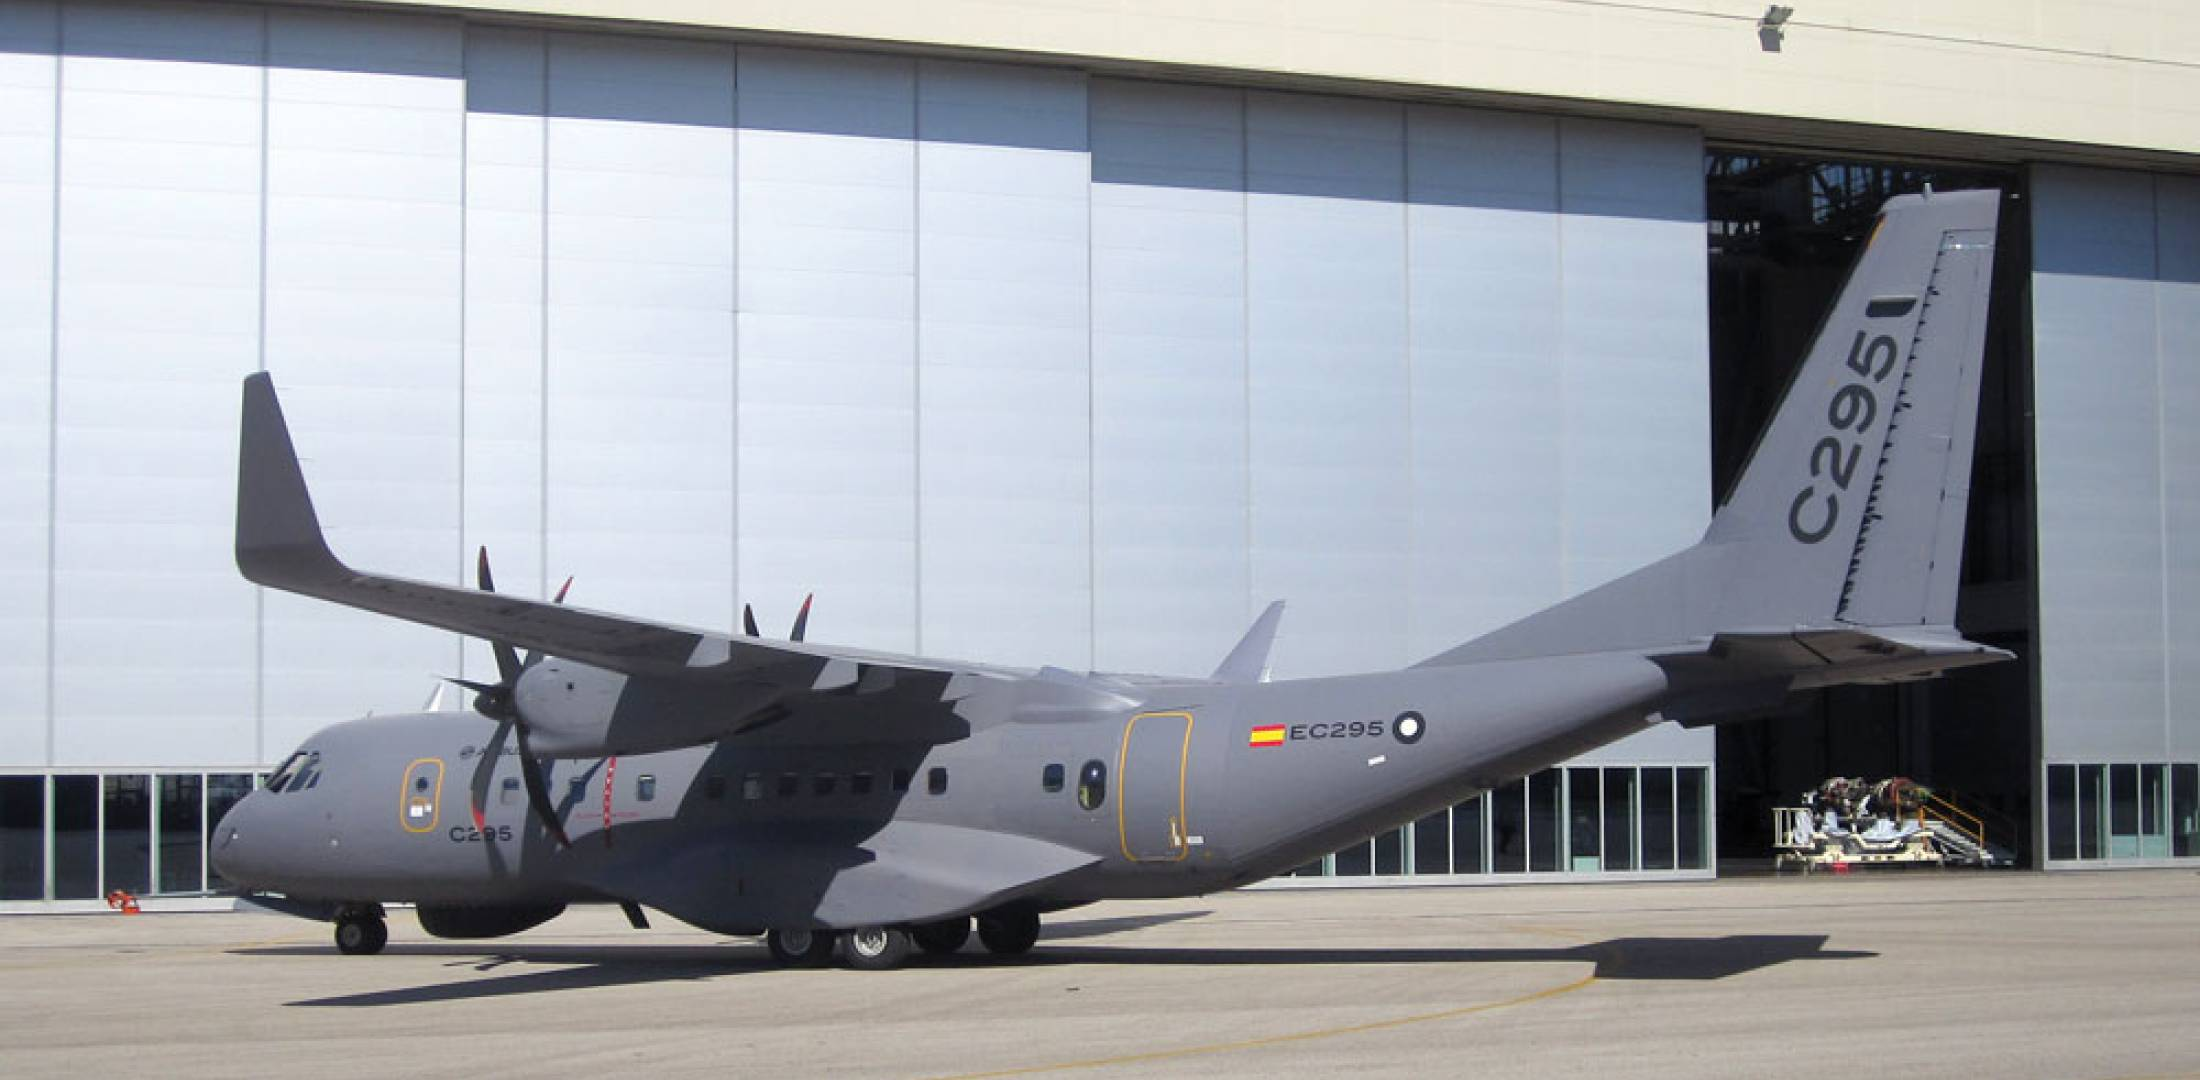 Airbus Military formally launched the C295W marketing effort just before the Paris show. Once certified, this will become the baseline production aircraft.